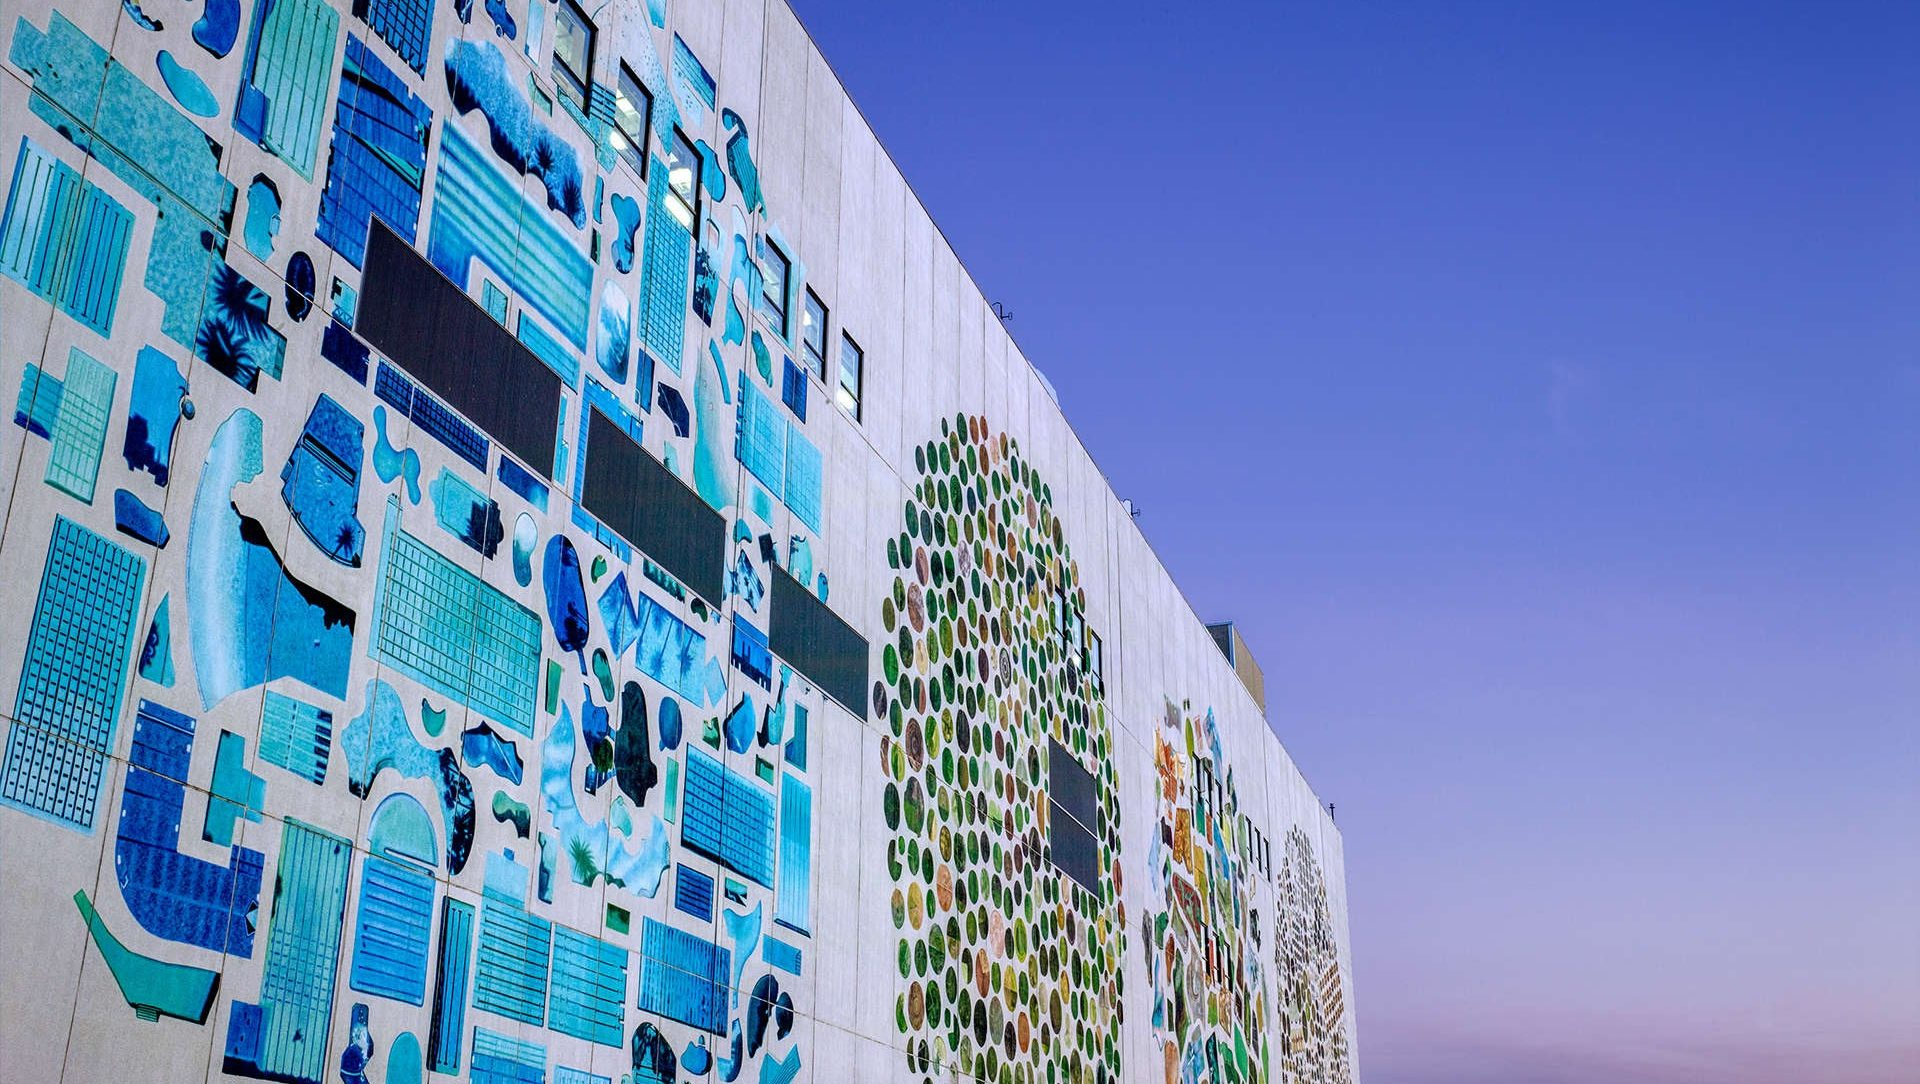 Mural on a Google Data Centre. Image: Google Cloud